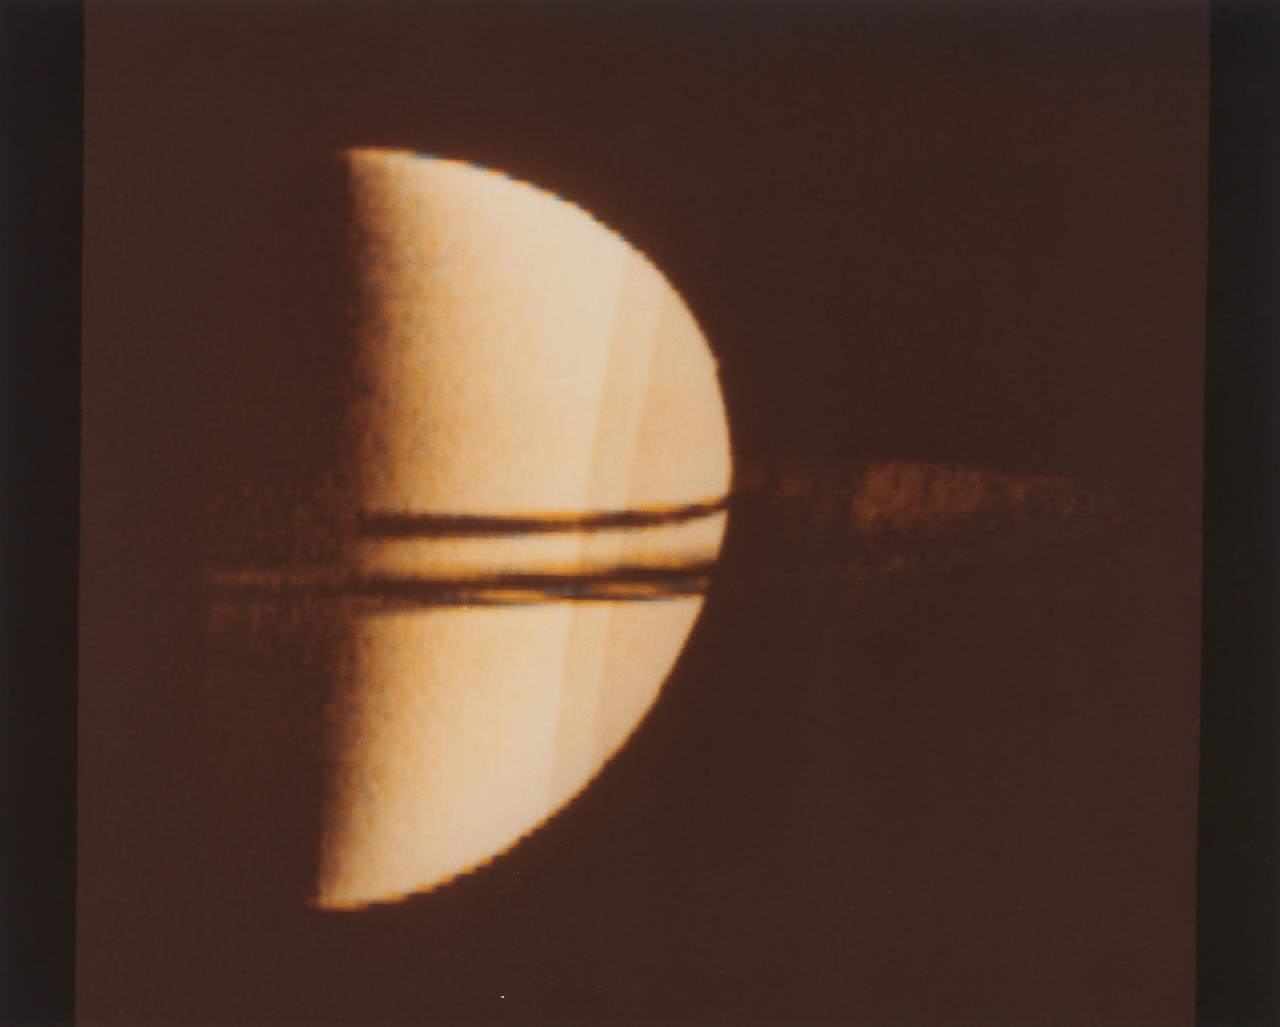 Outbound view of Saturn after first encounter by Pioneer